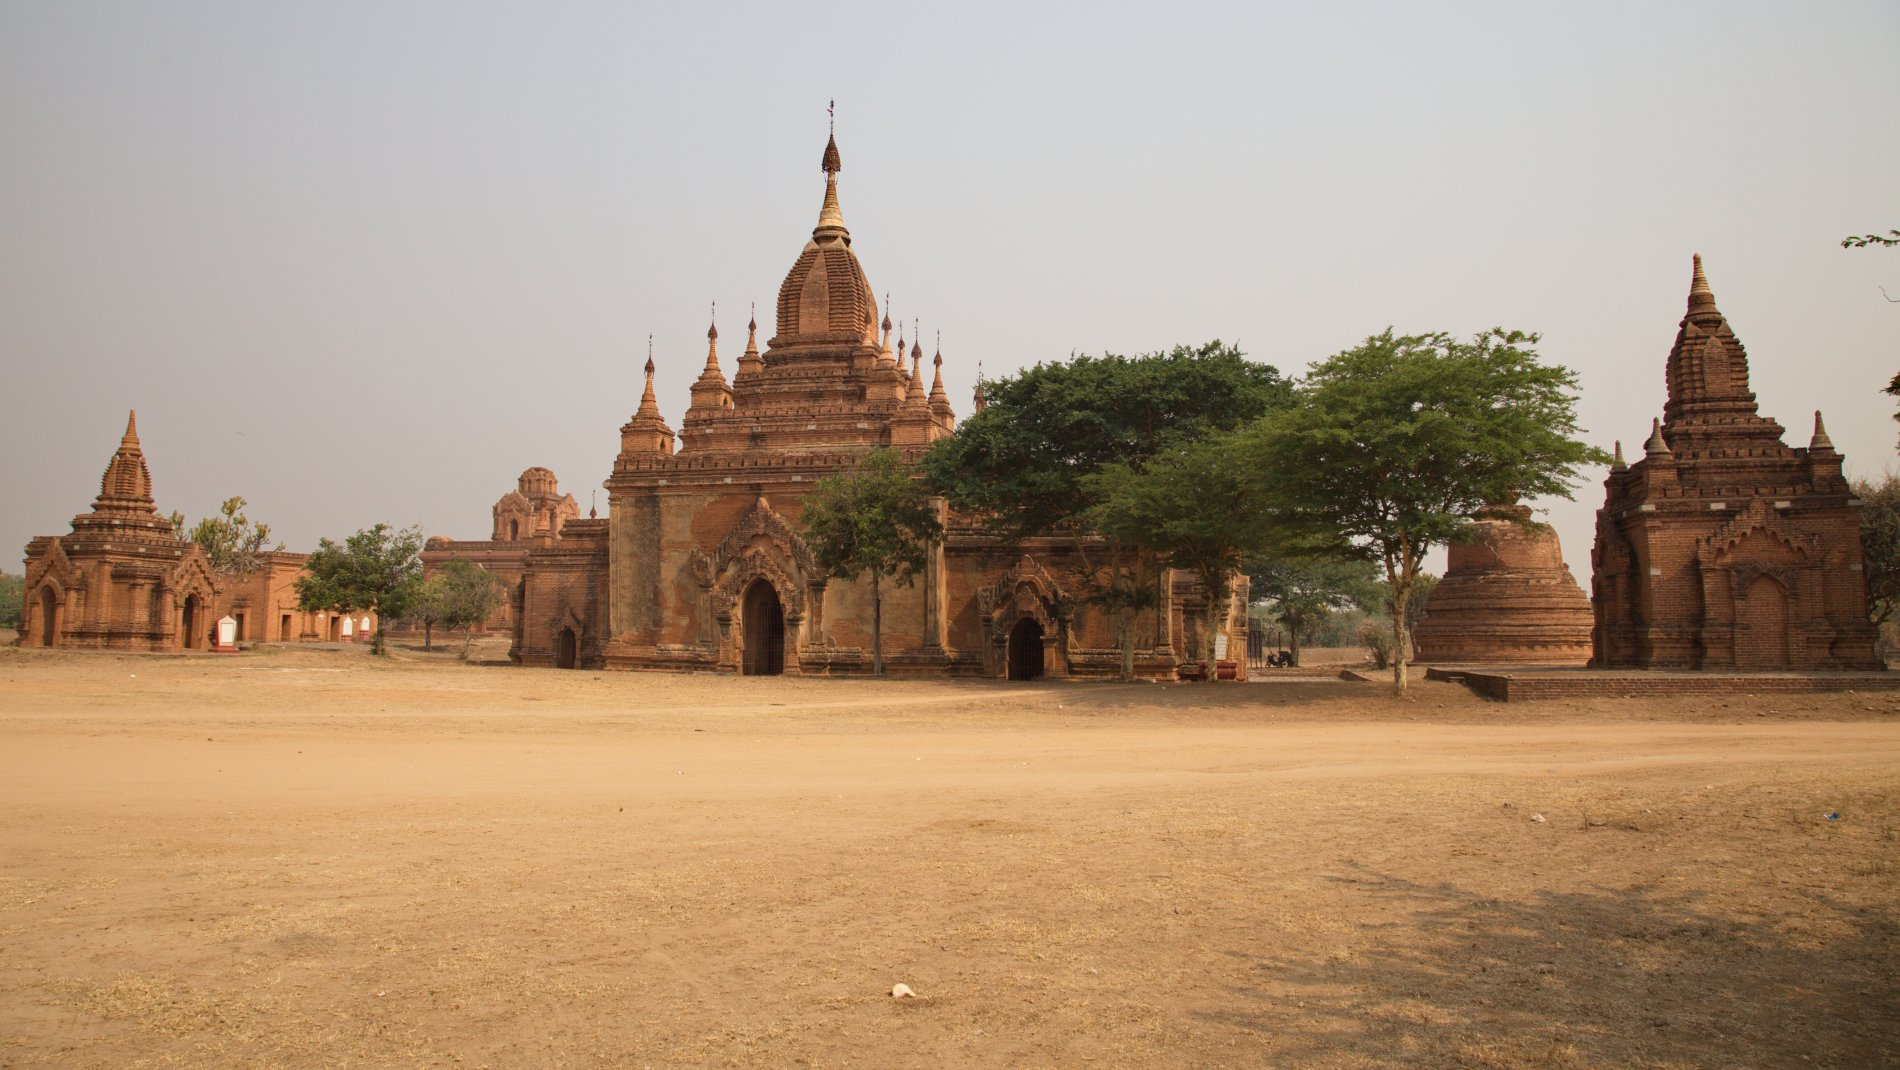 Bagan_103.jpg-commment